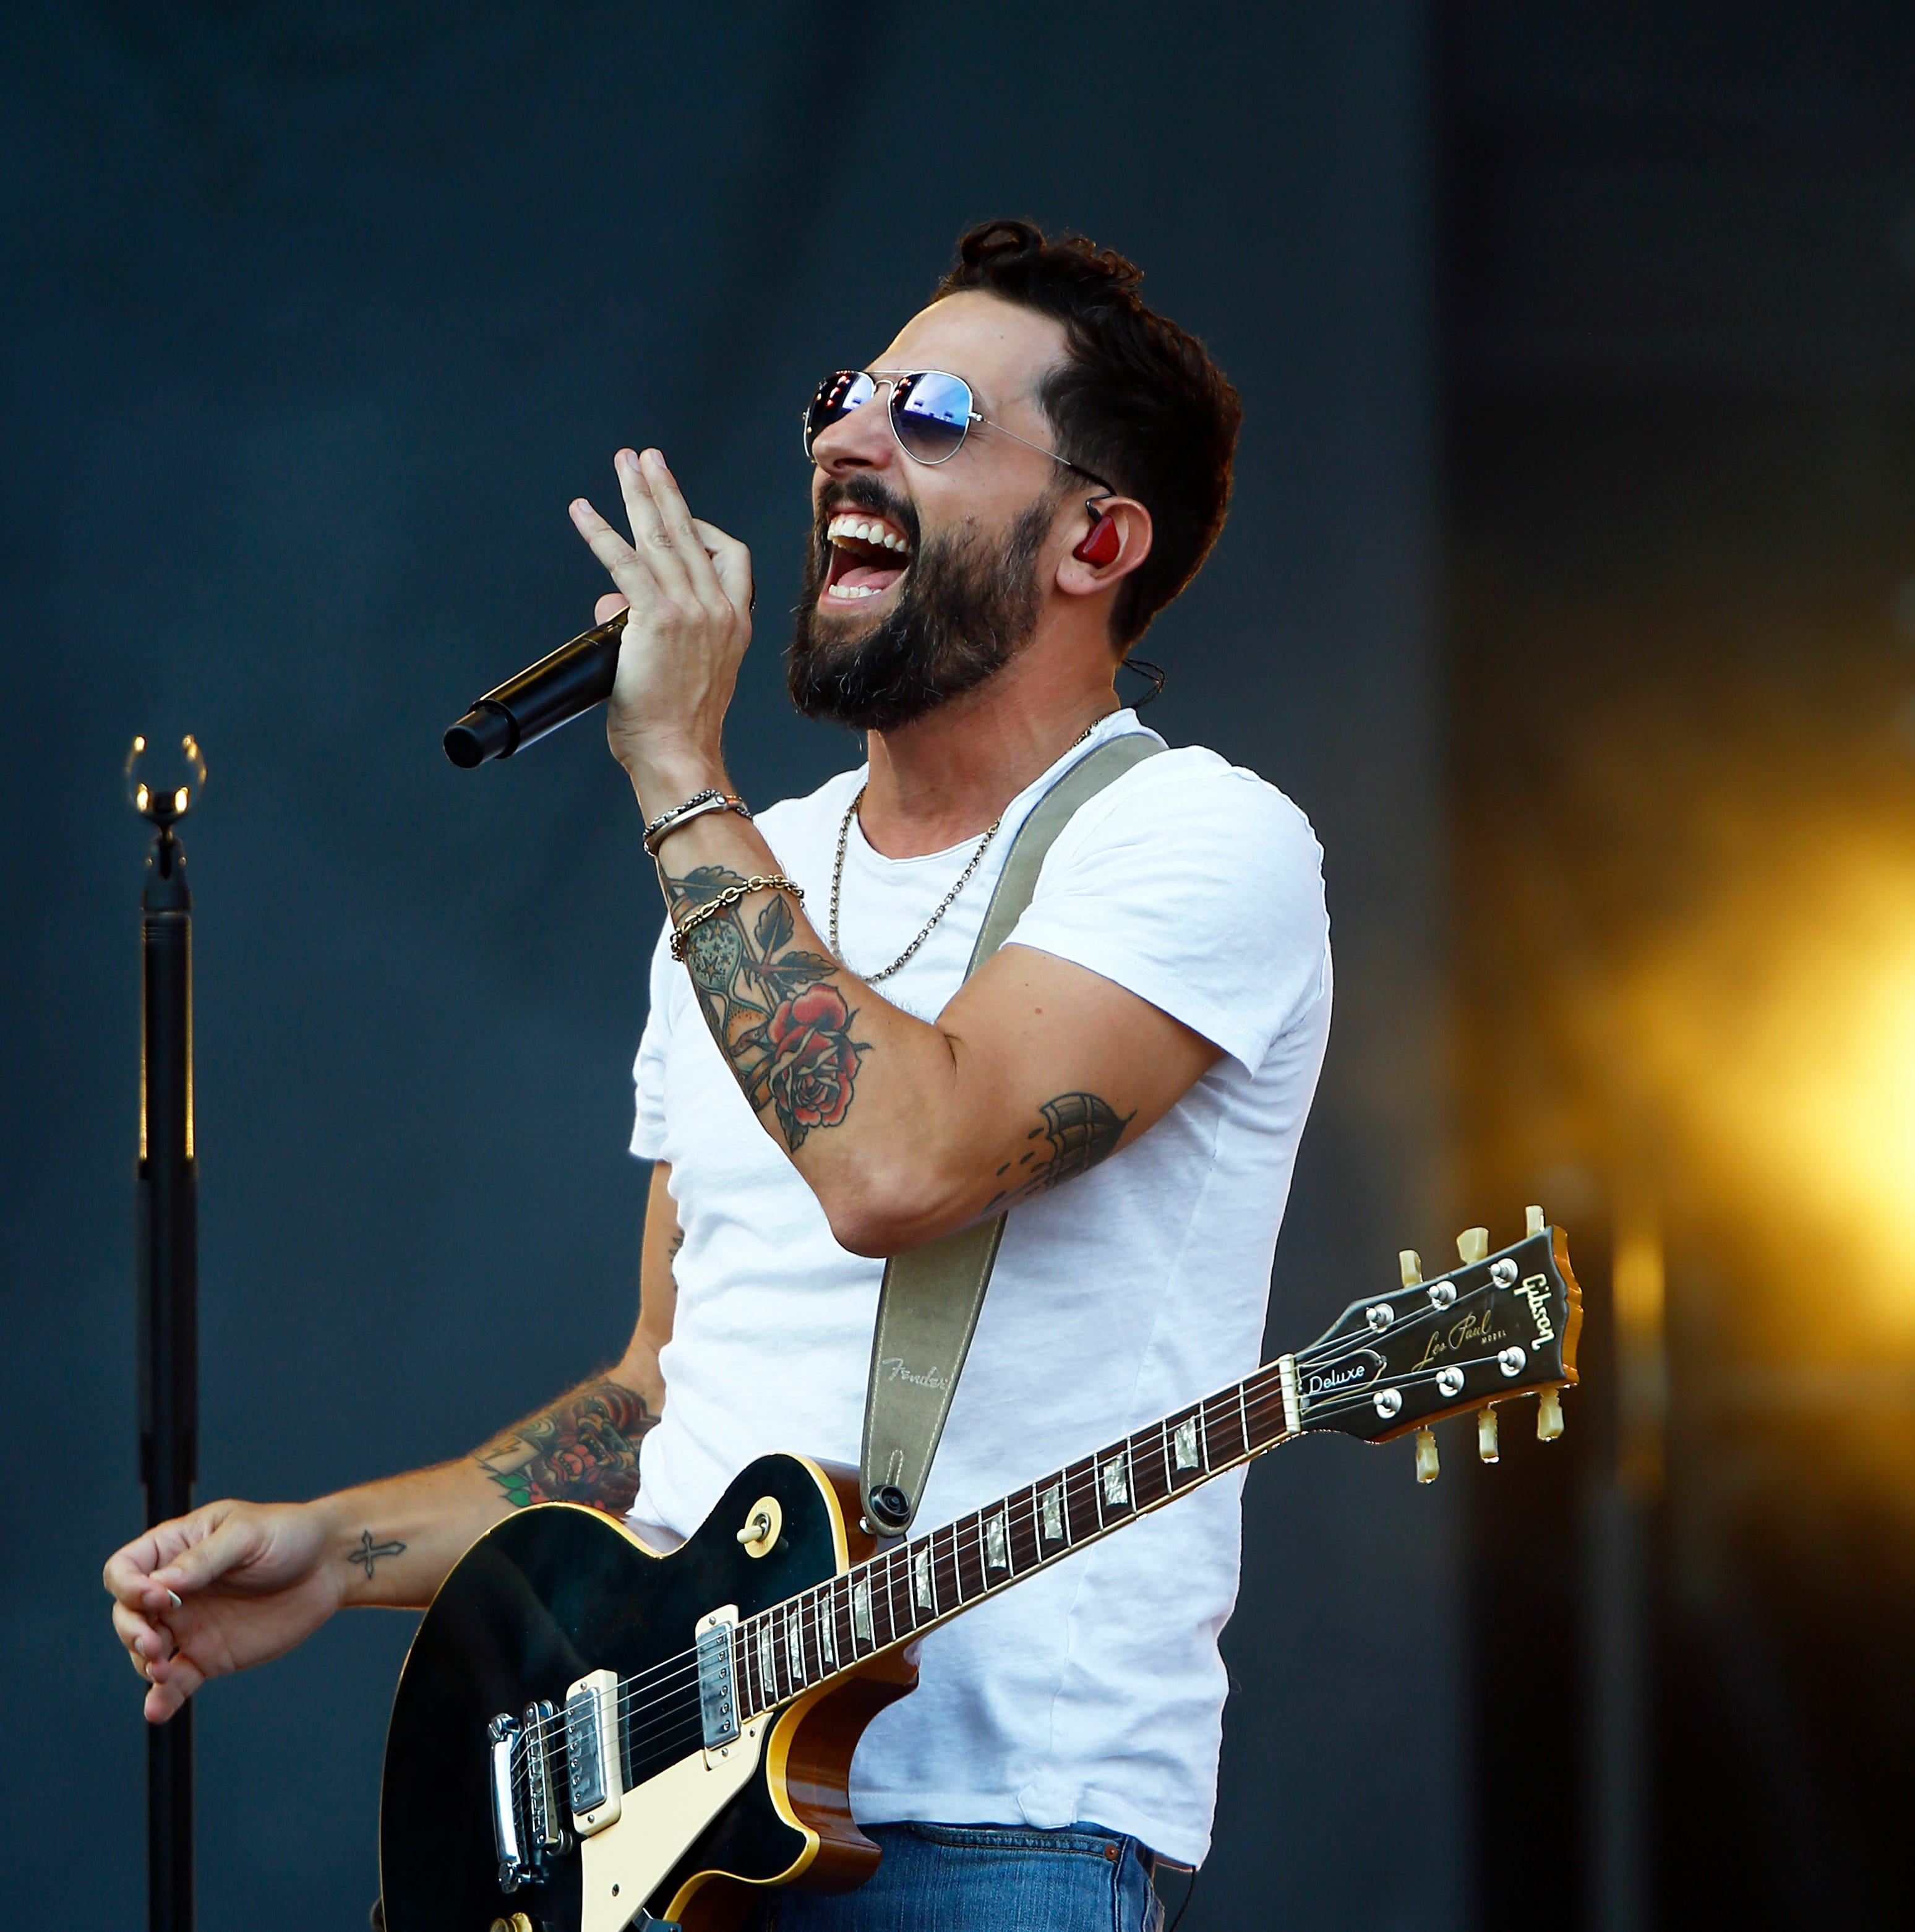 Matthew Ramsey, lead singer of the band Old Dominion performs during a concert at Nissan Stadium Saturday, Aug. 11, 2018 in Nashville, Tenn.